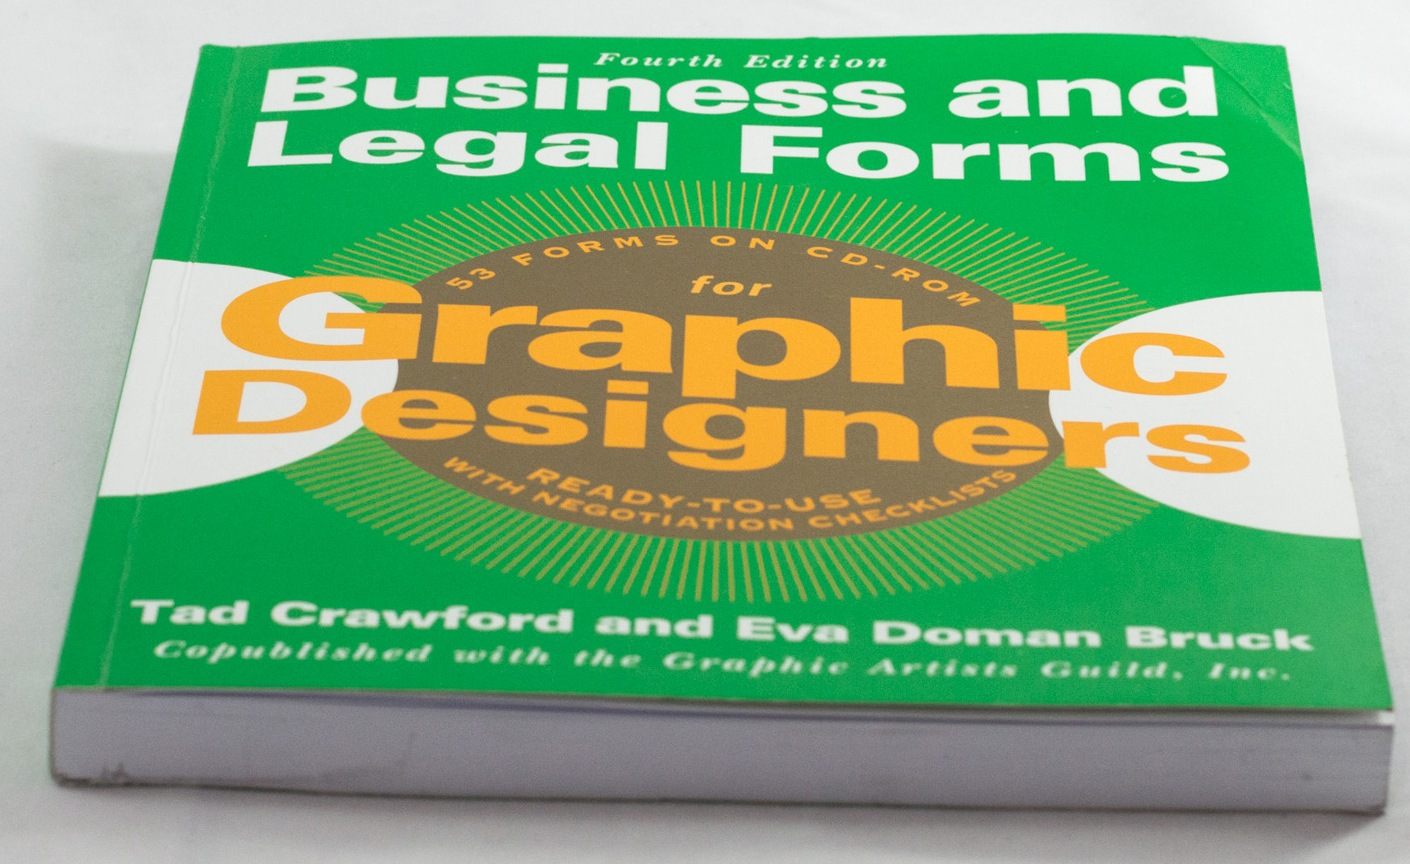 Business and Legal Forms for Graphic Designers – Crawford & Doman Bruck, Graphic Artists Guild